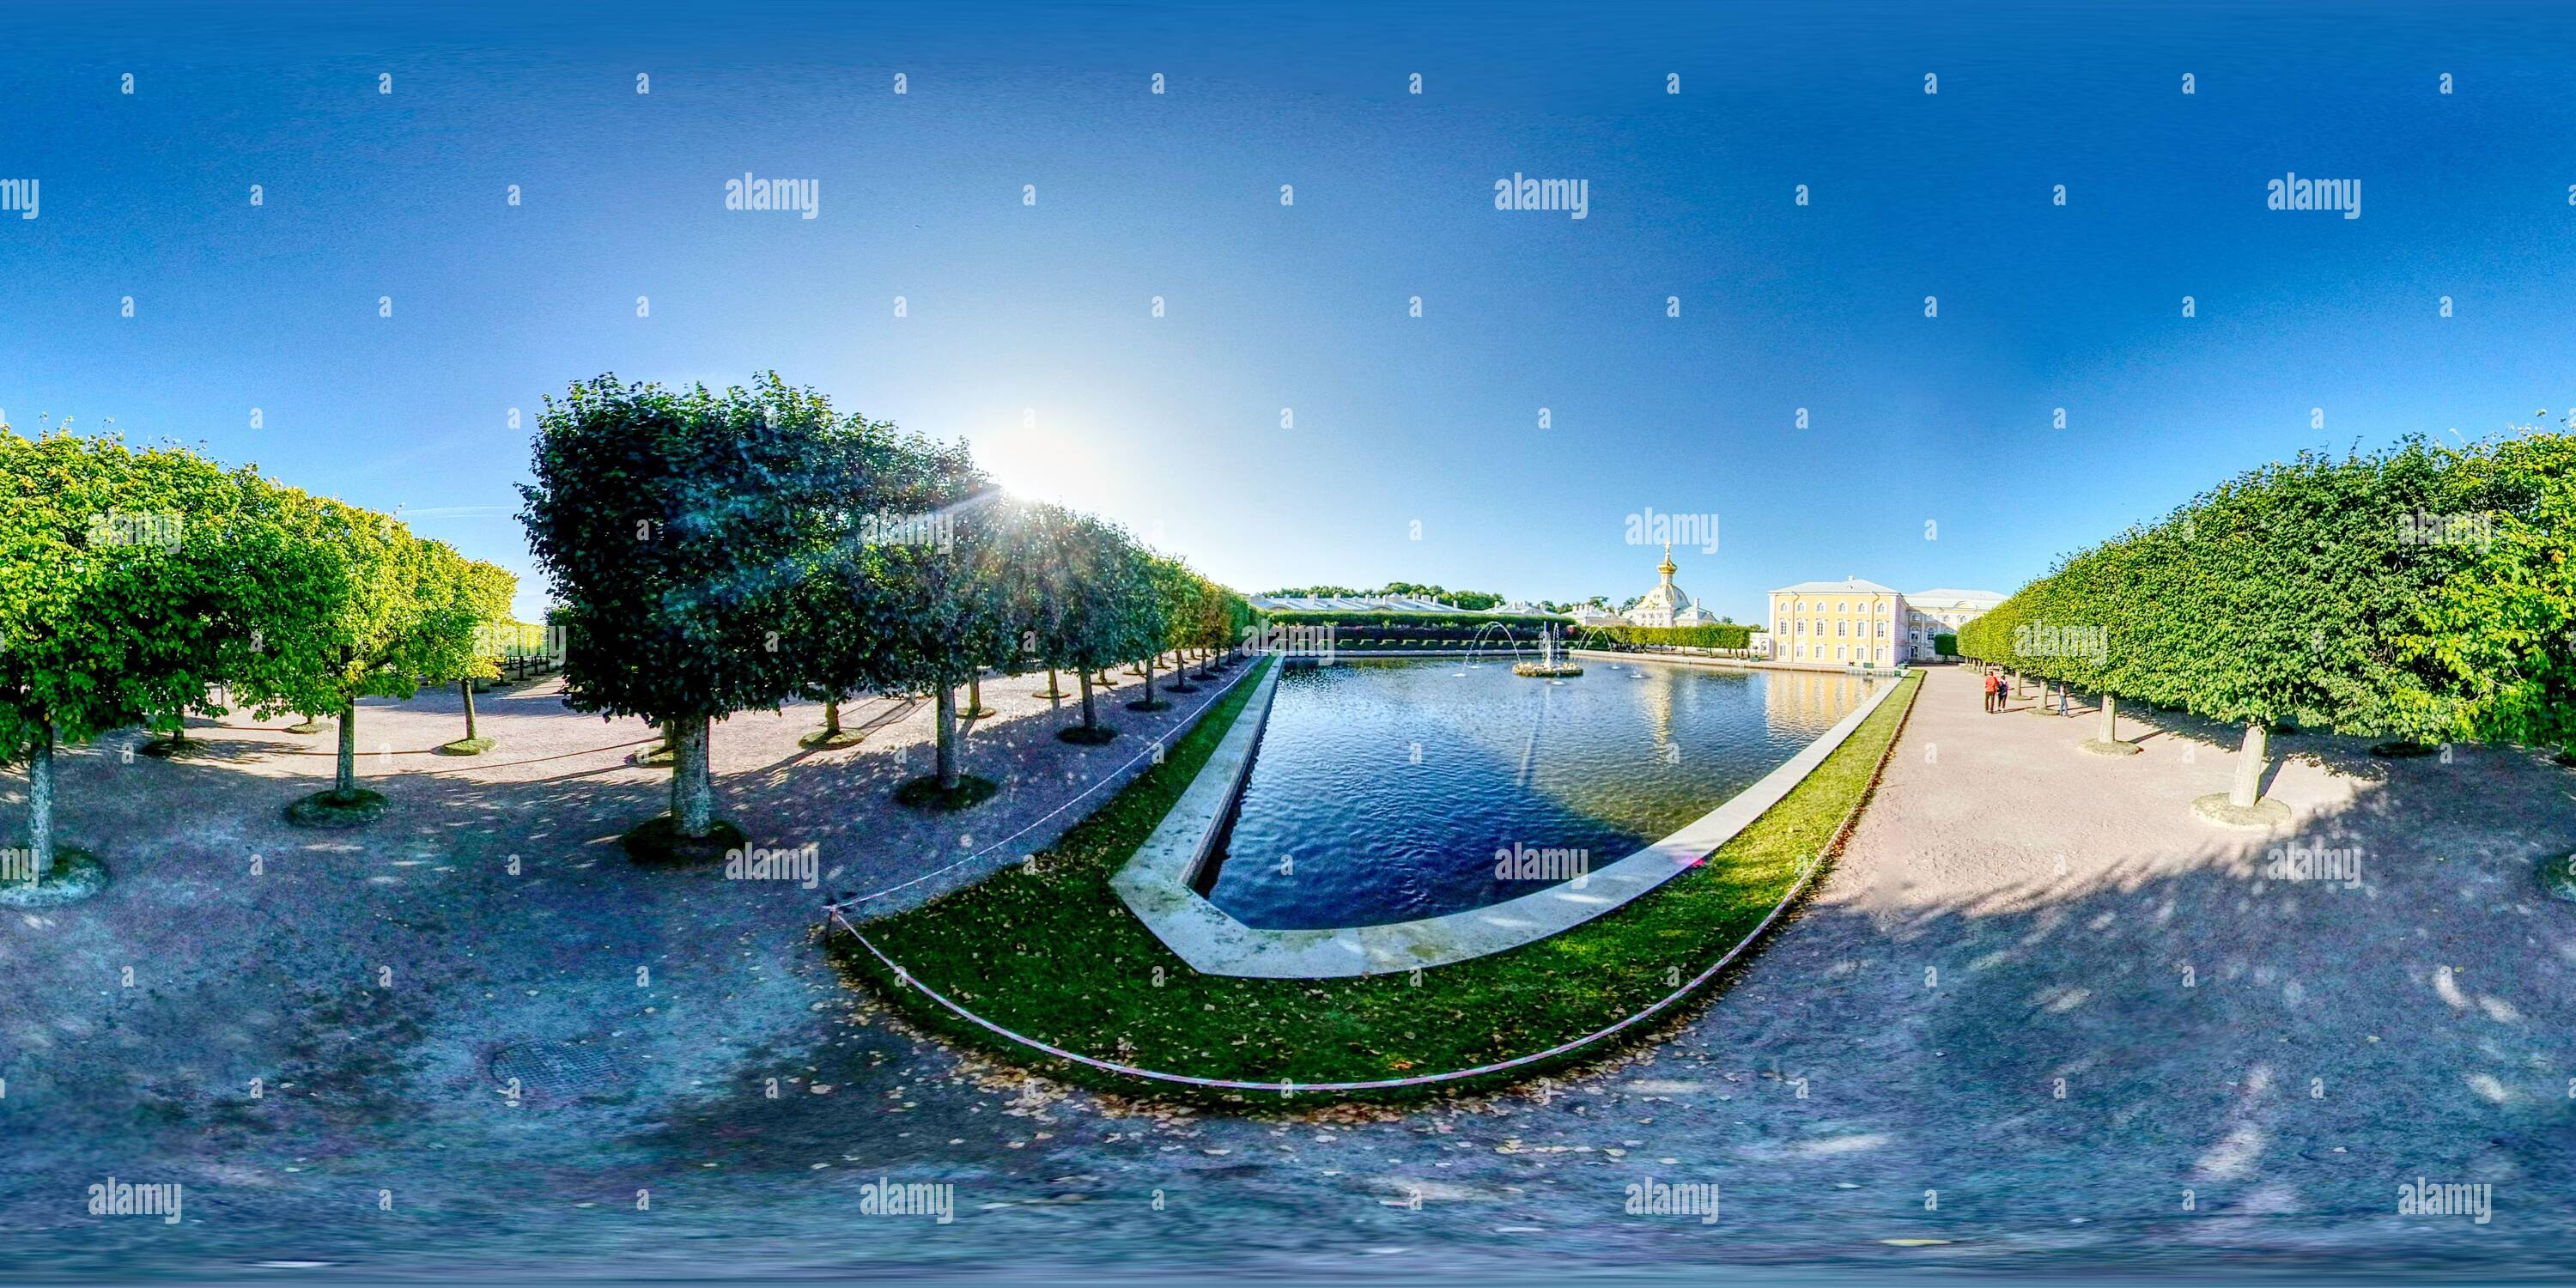 360 degree panoramic view of Beautiful landscape. Upper Garden and Grand Palace. XVIII century baroque architecture. UNESCO heritage. Peterhof Petrodvorets Russia